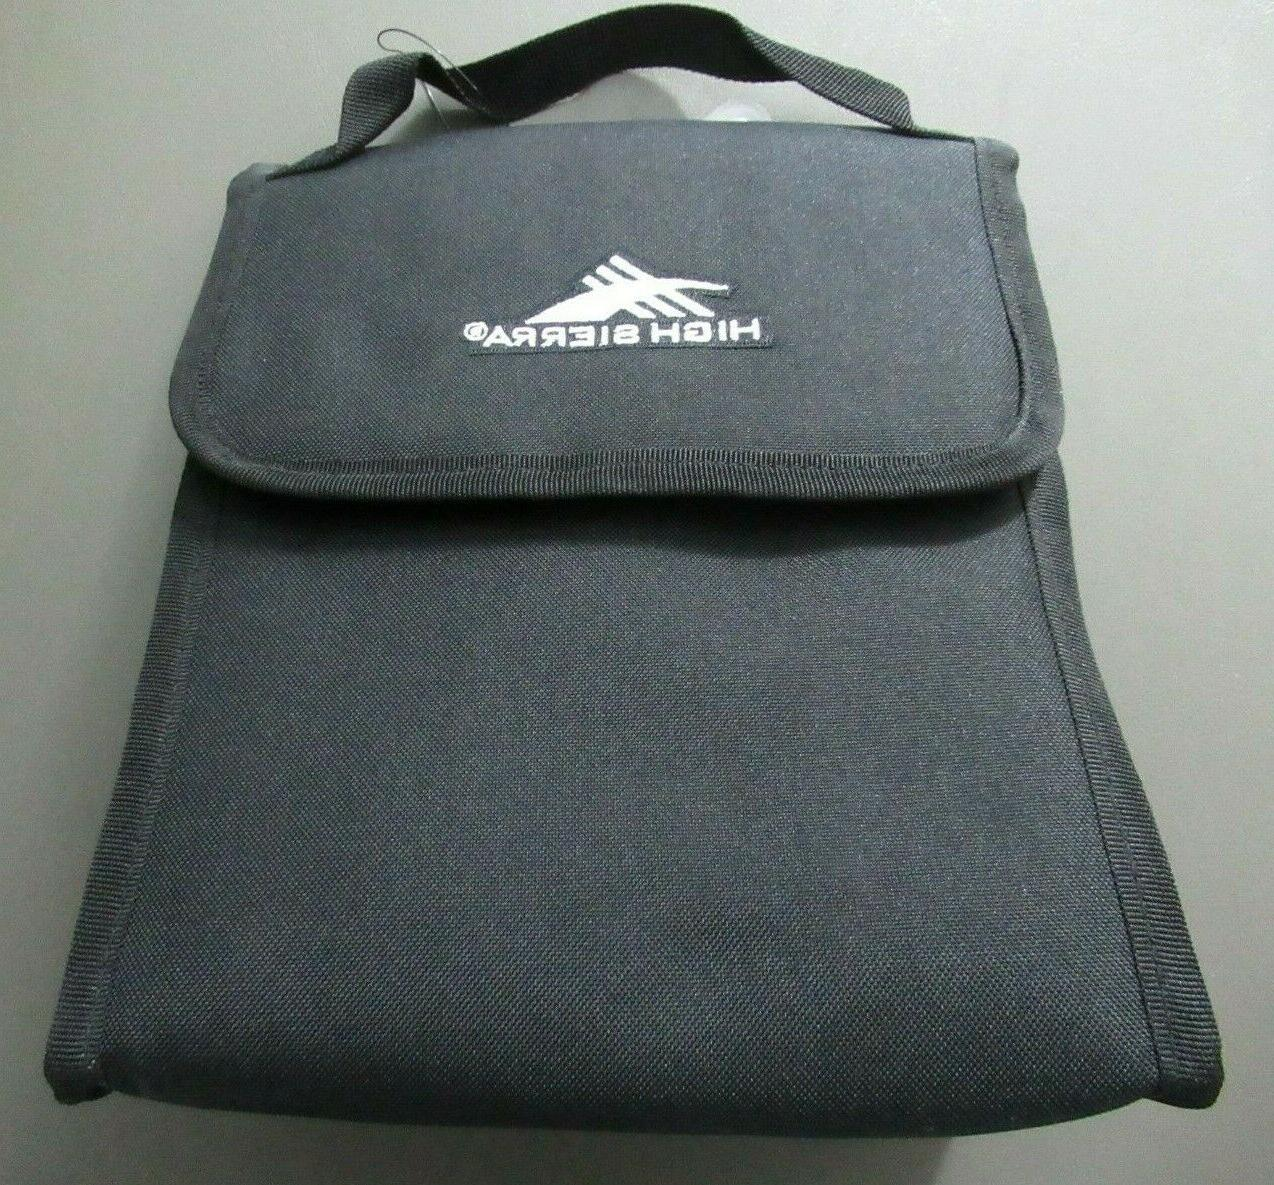 classic lunchbox black one size